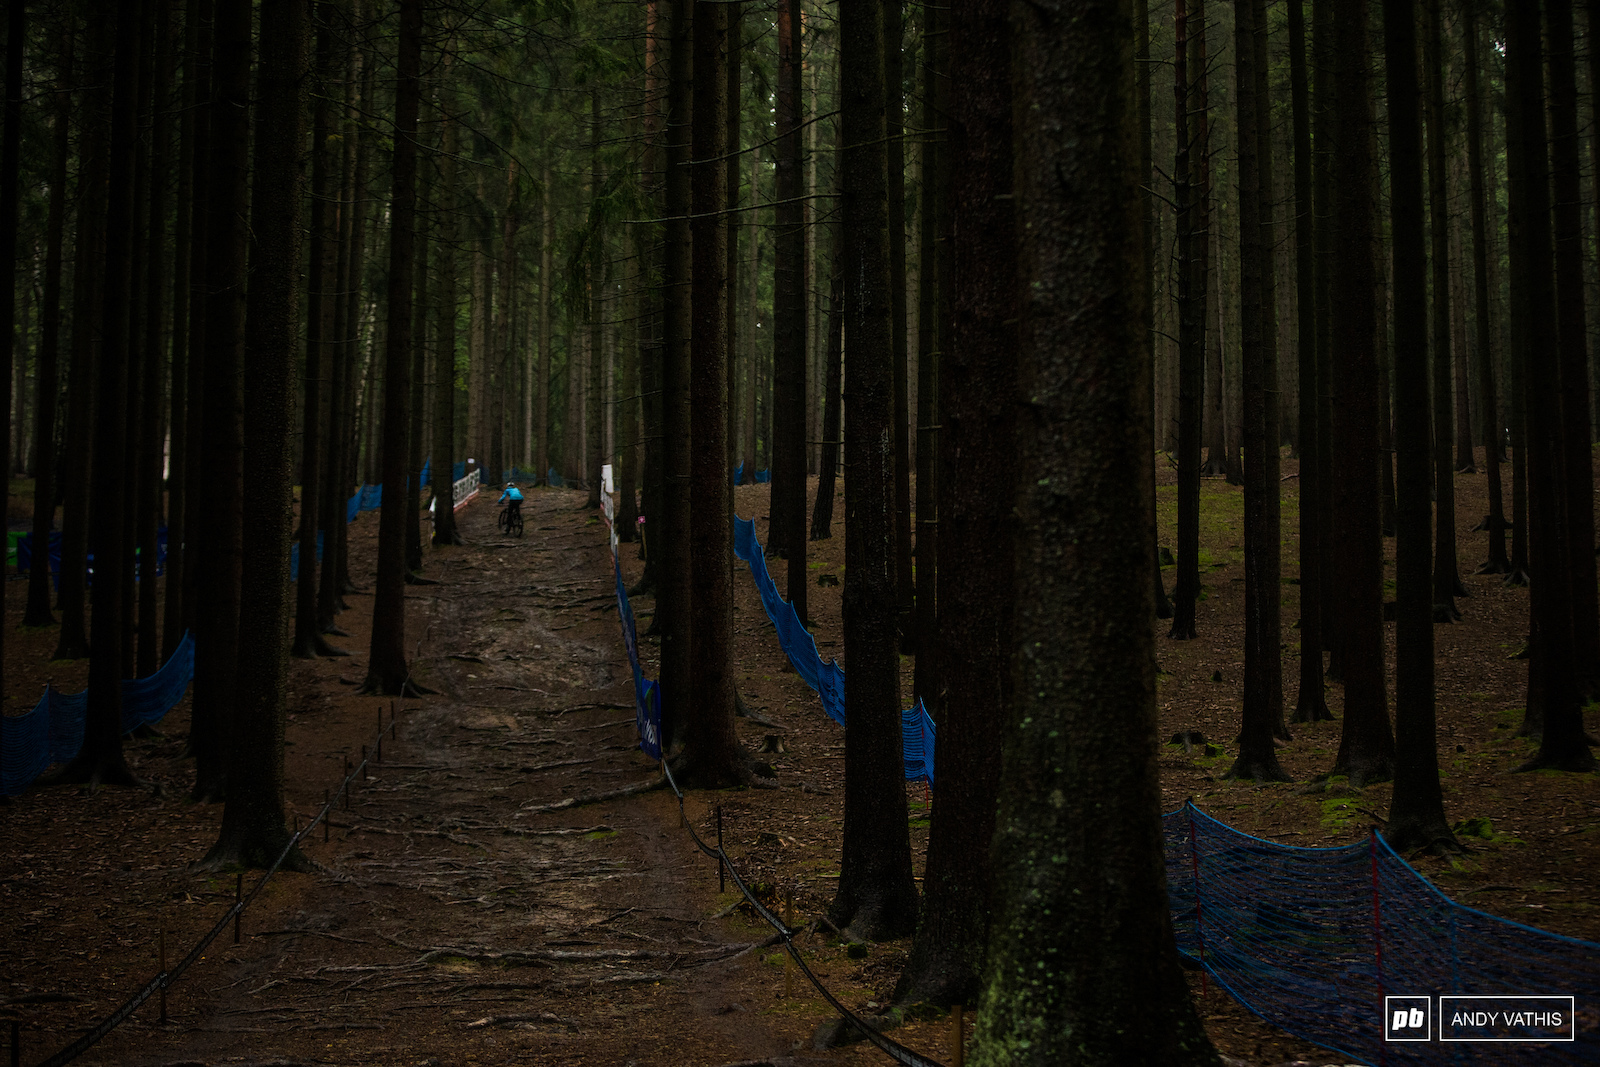 The long rooty climb to the upper part of the course will be a lot quieter this year without spectators.